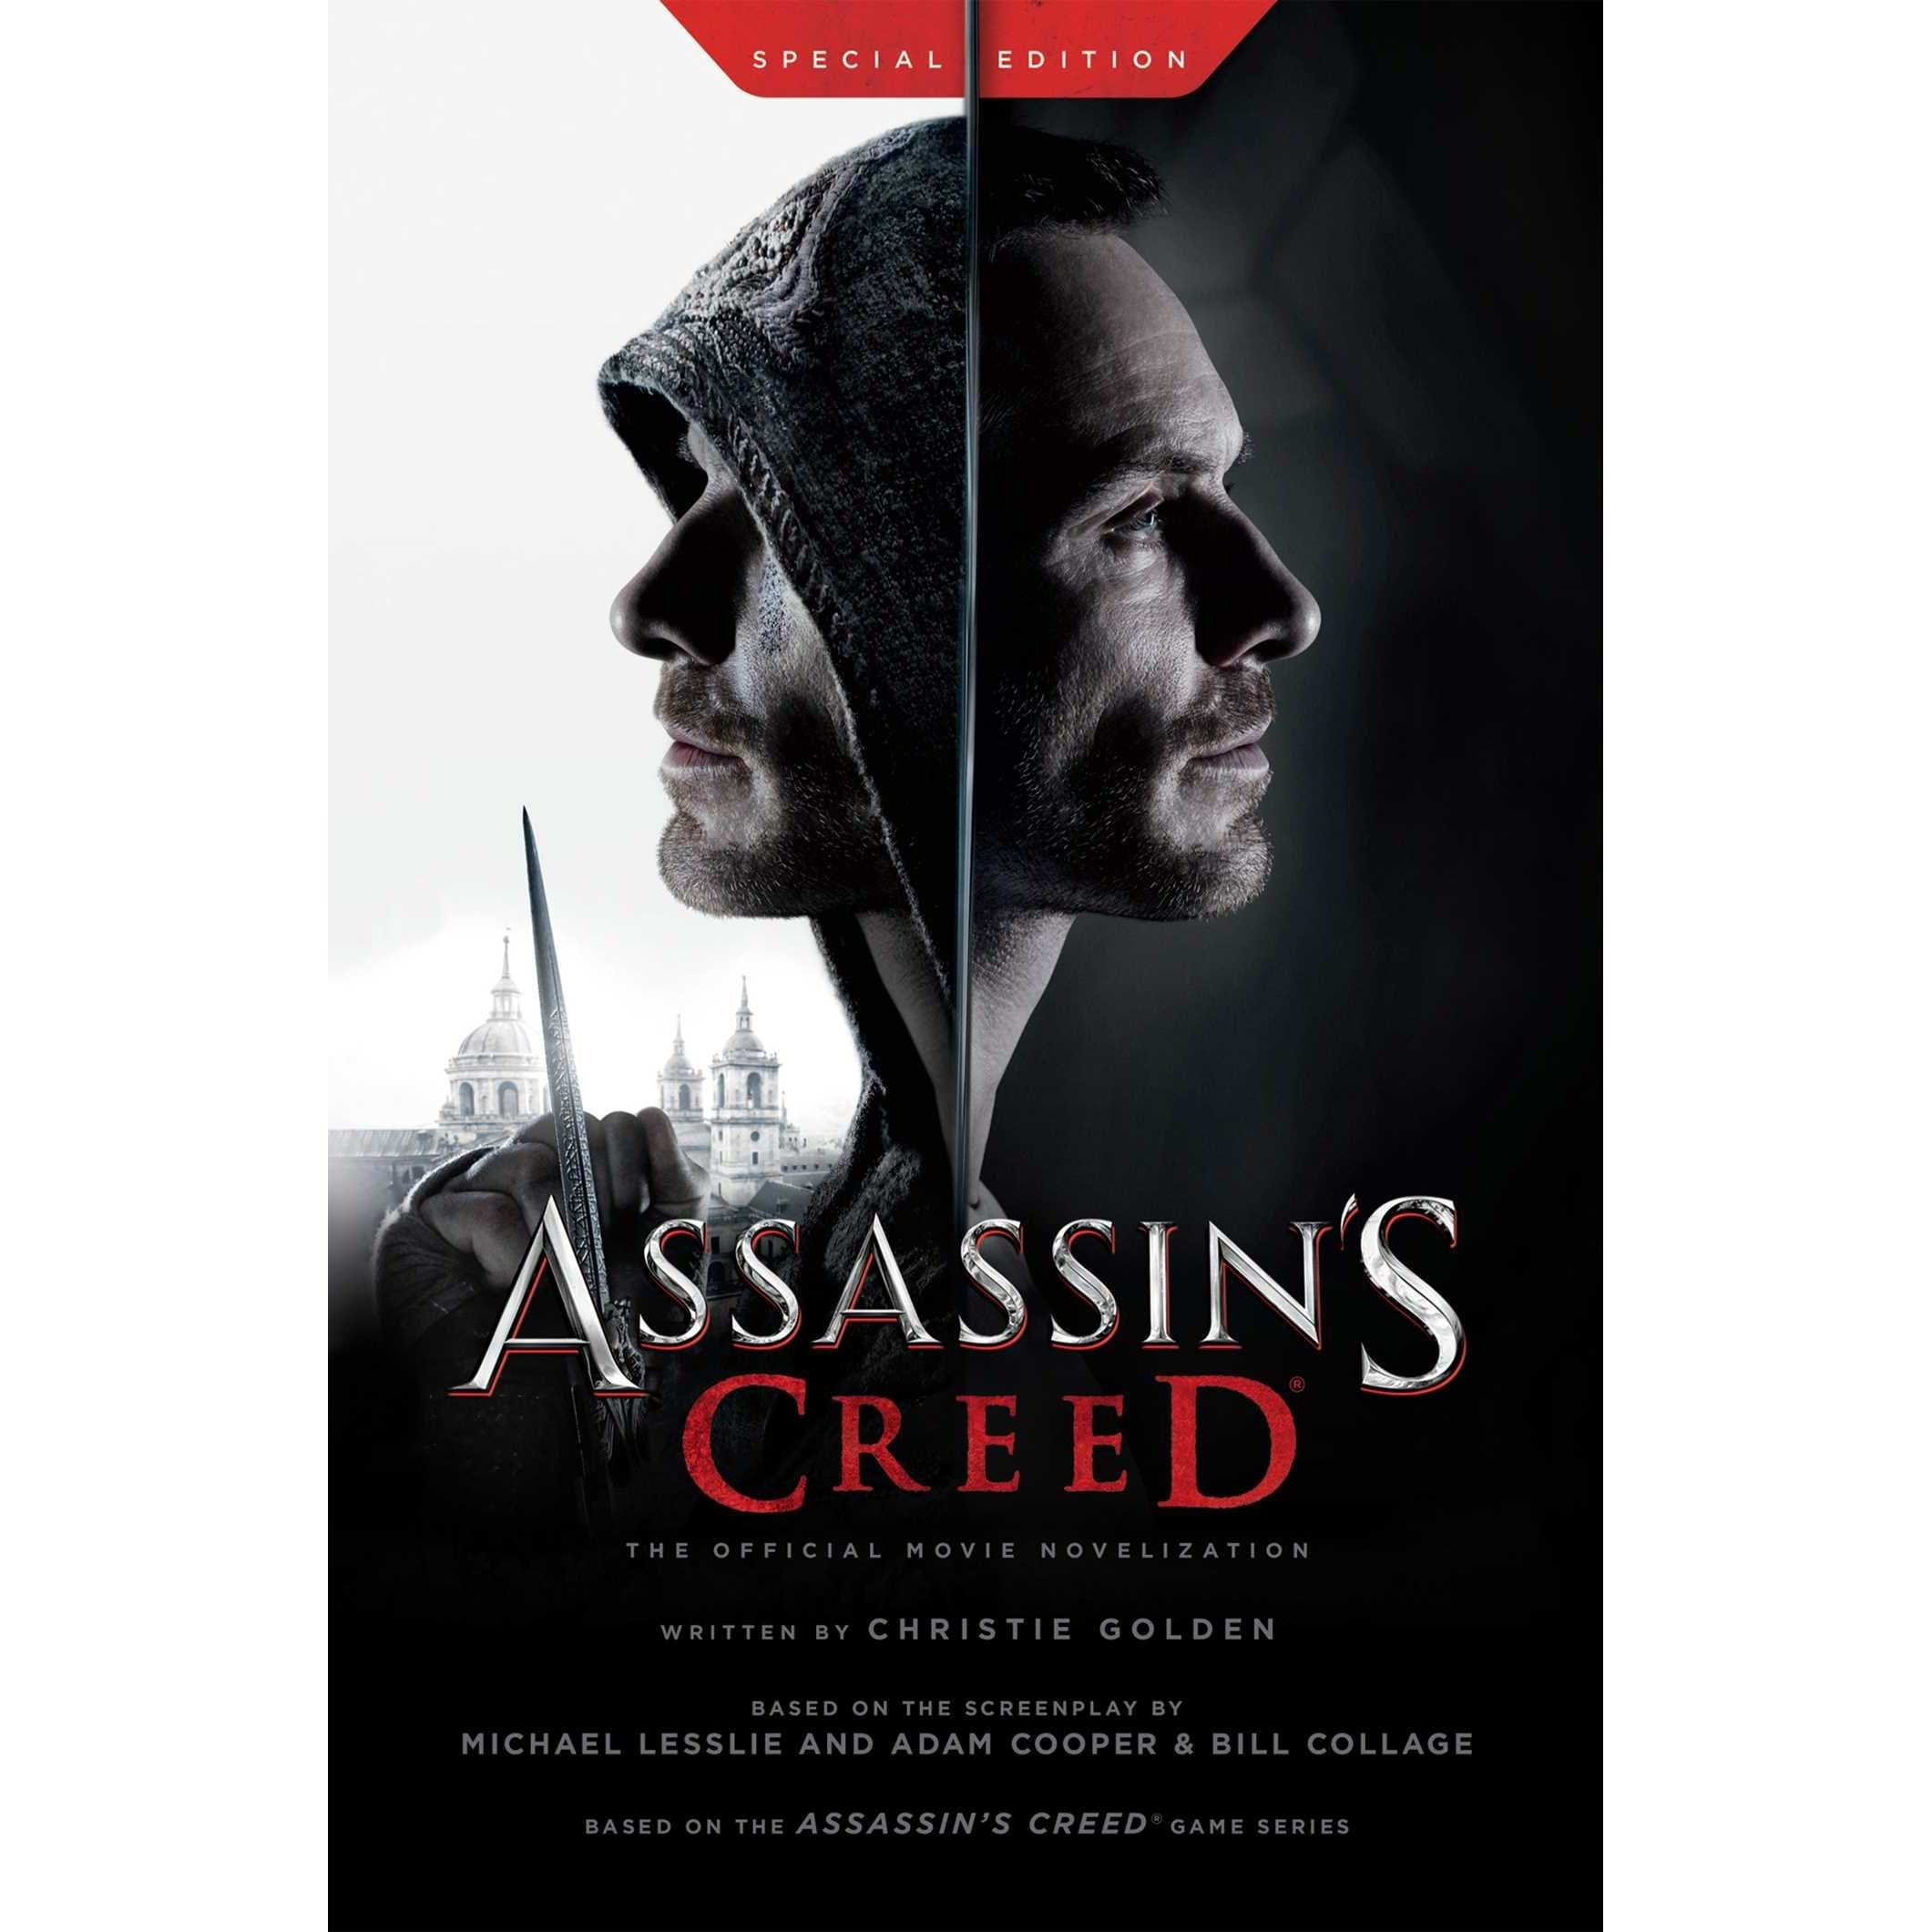 fe71e4e3ba15 Assassin s Creed  The Official Movie Novelization by Christie Golden